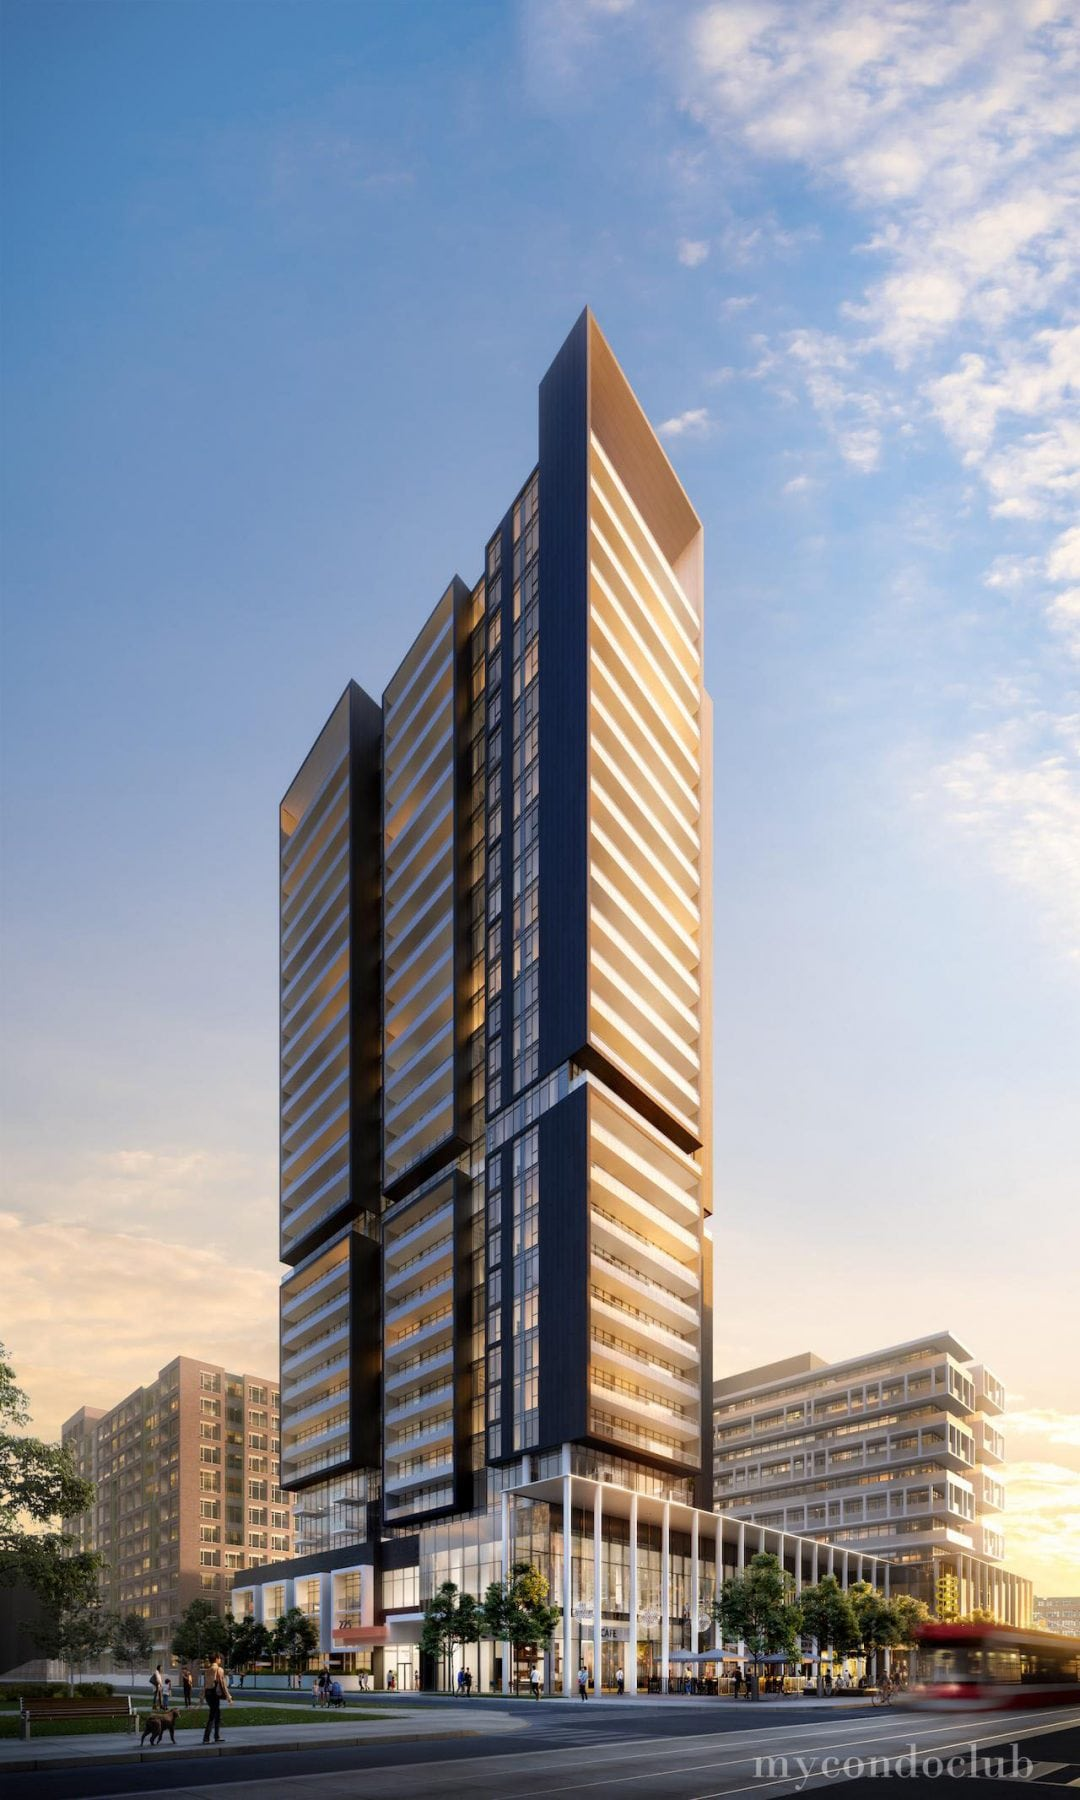 DuEast-condo-tower-daniels-corporation-DanielsDuEastCondominiums225-Sumach-Street-toronto-mycondoclub